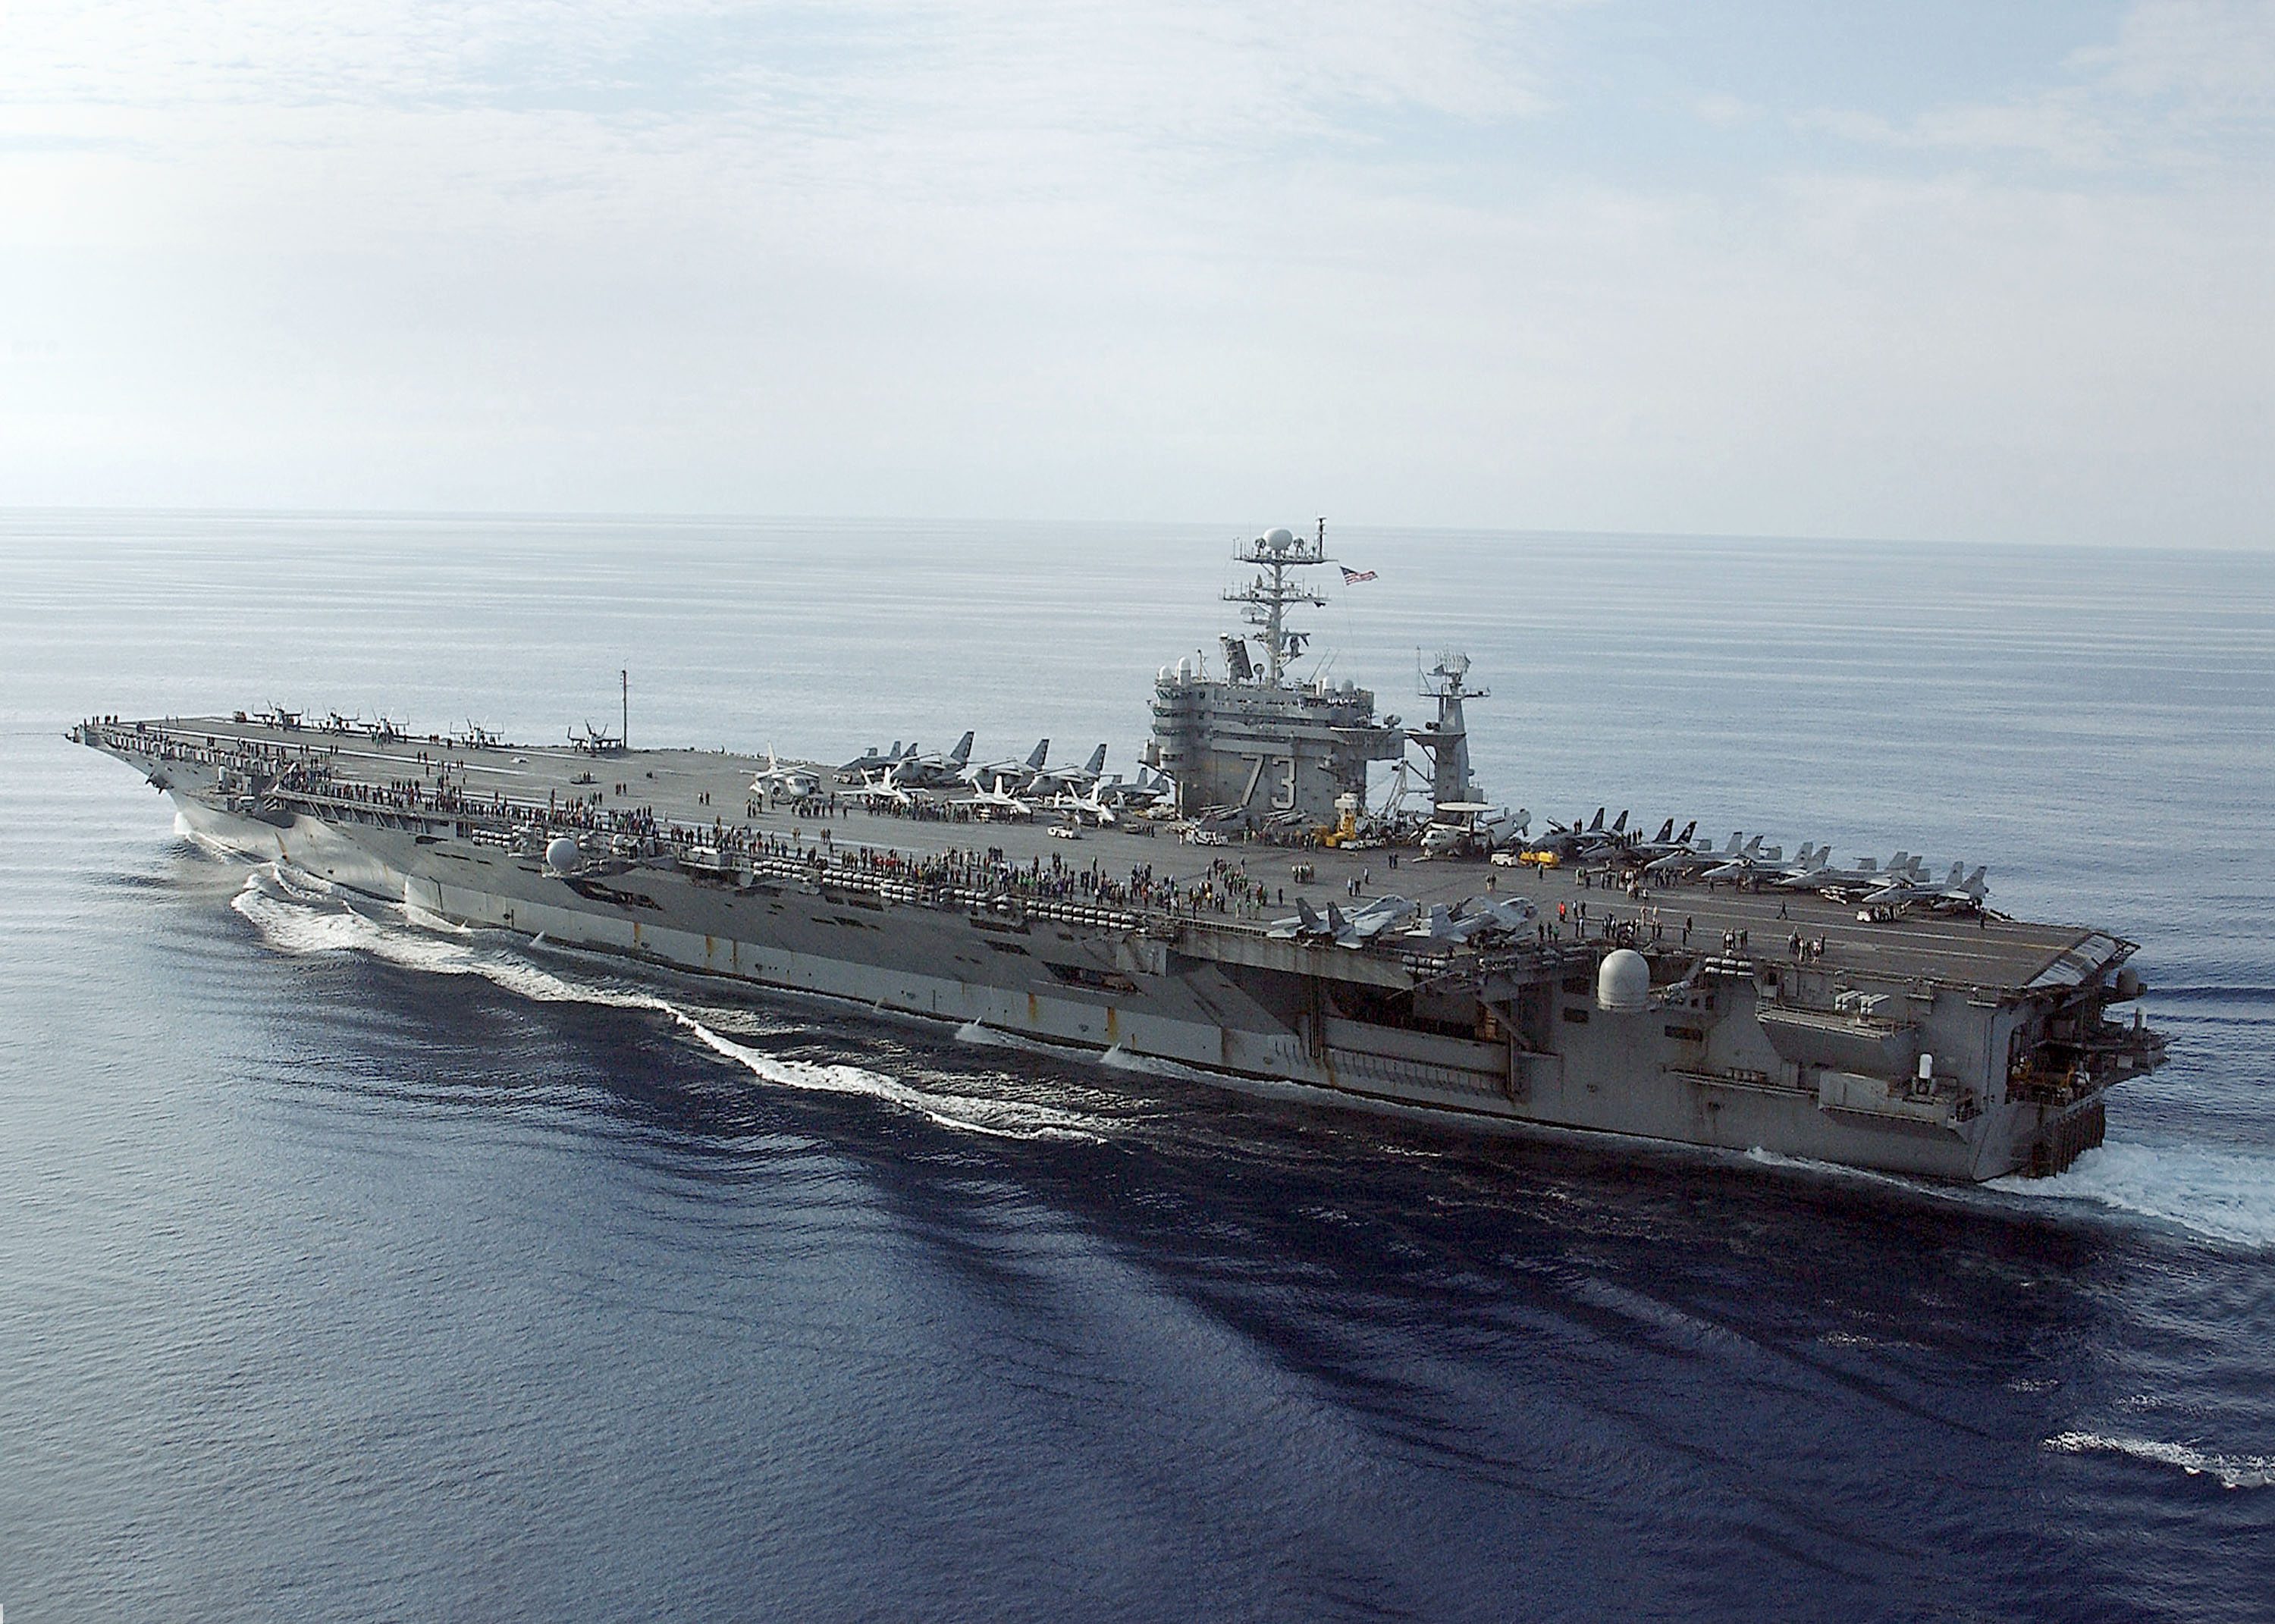 The USS George Washington